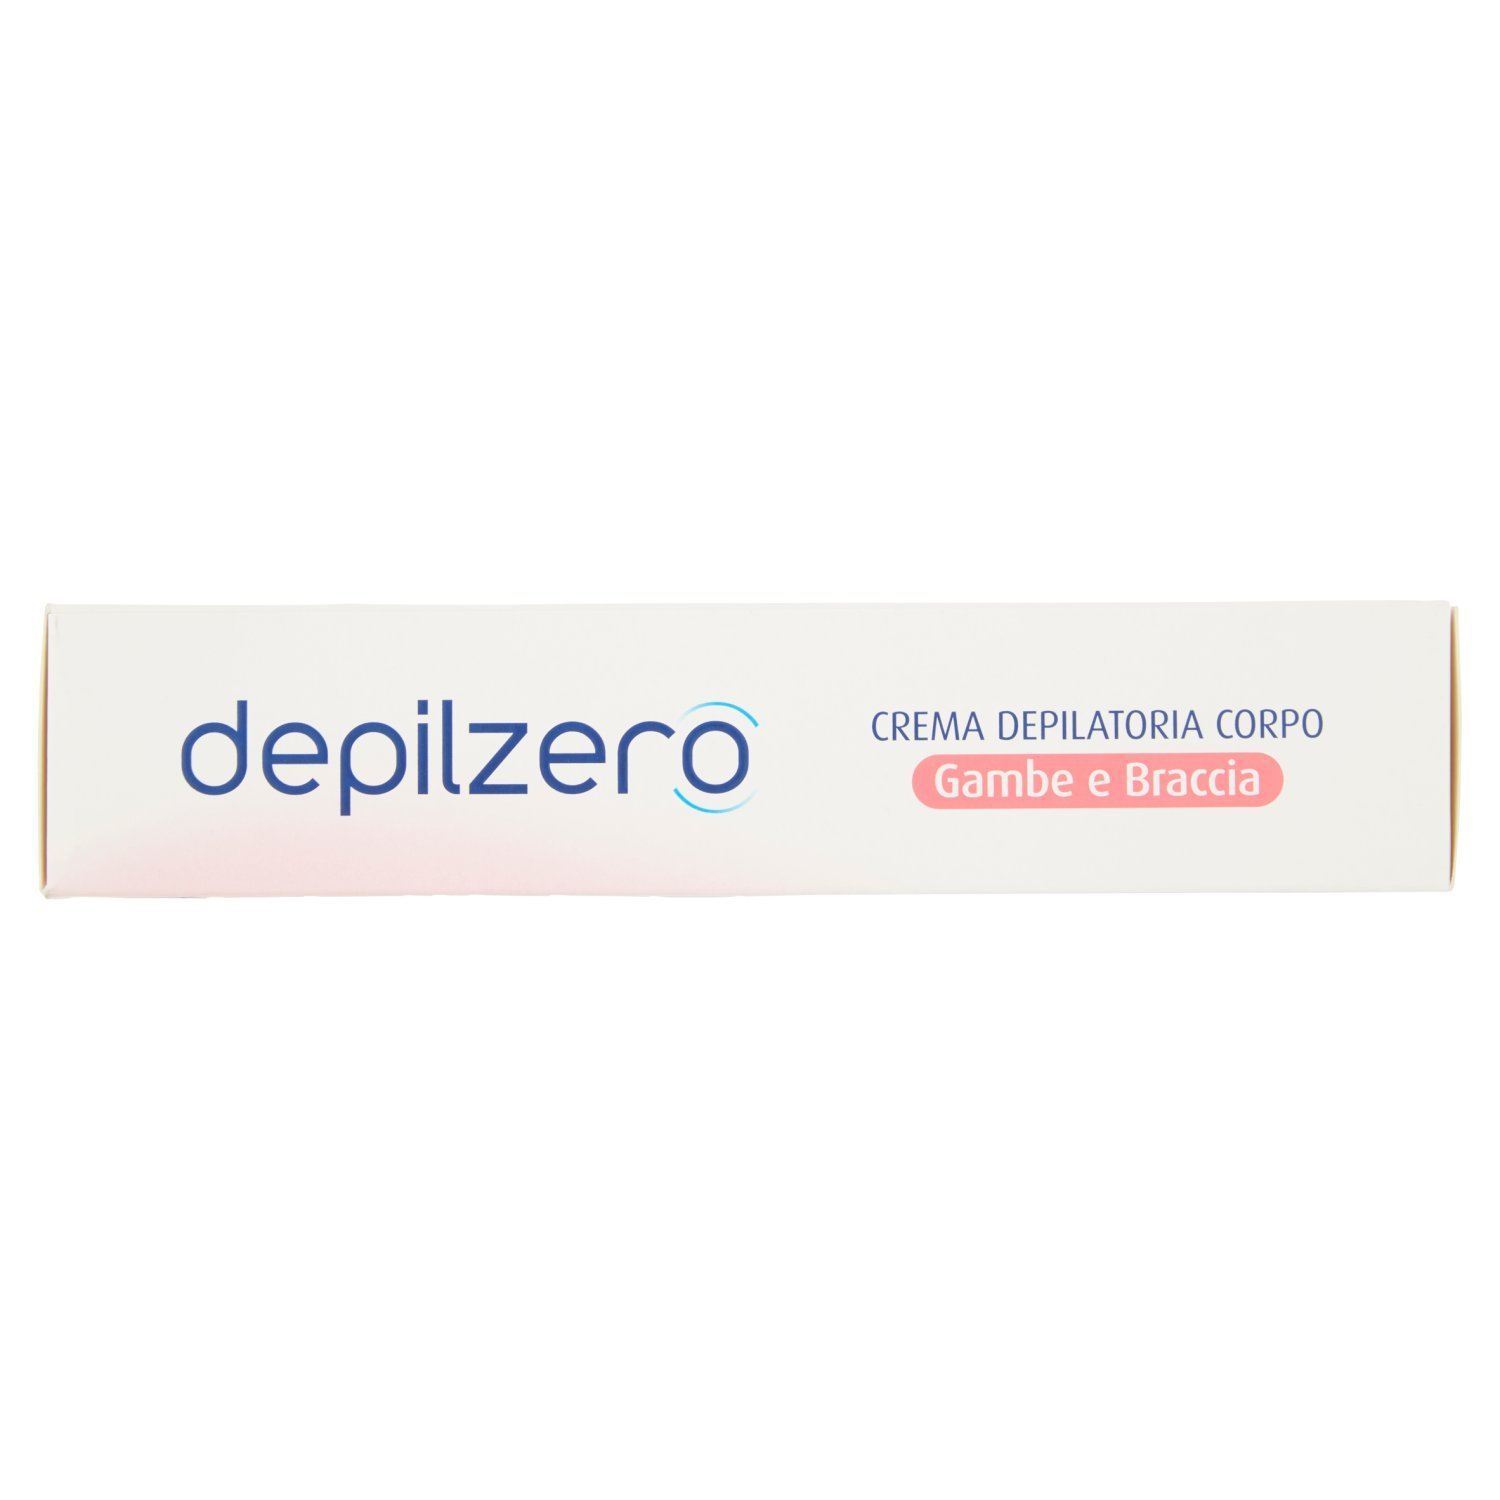 Amazon.com: Depilzero Cr Legs/br 150ml: Health & Personal Care